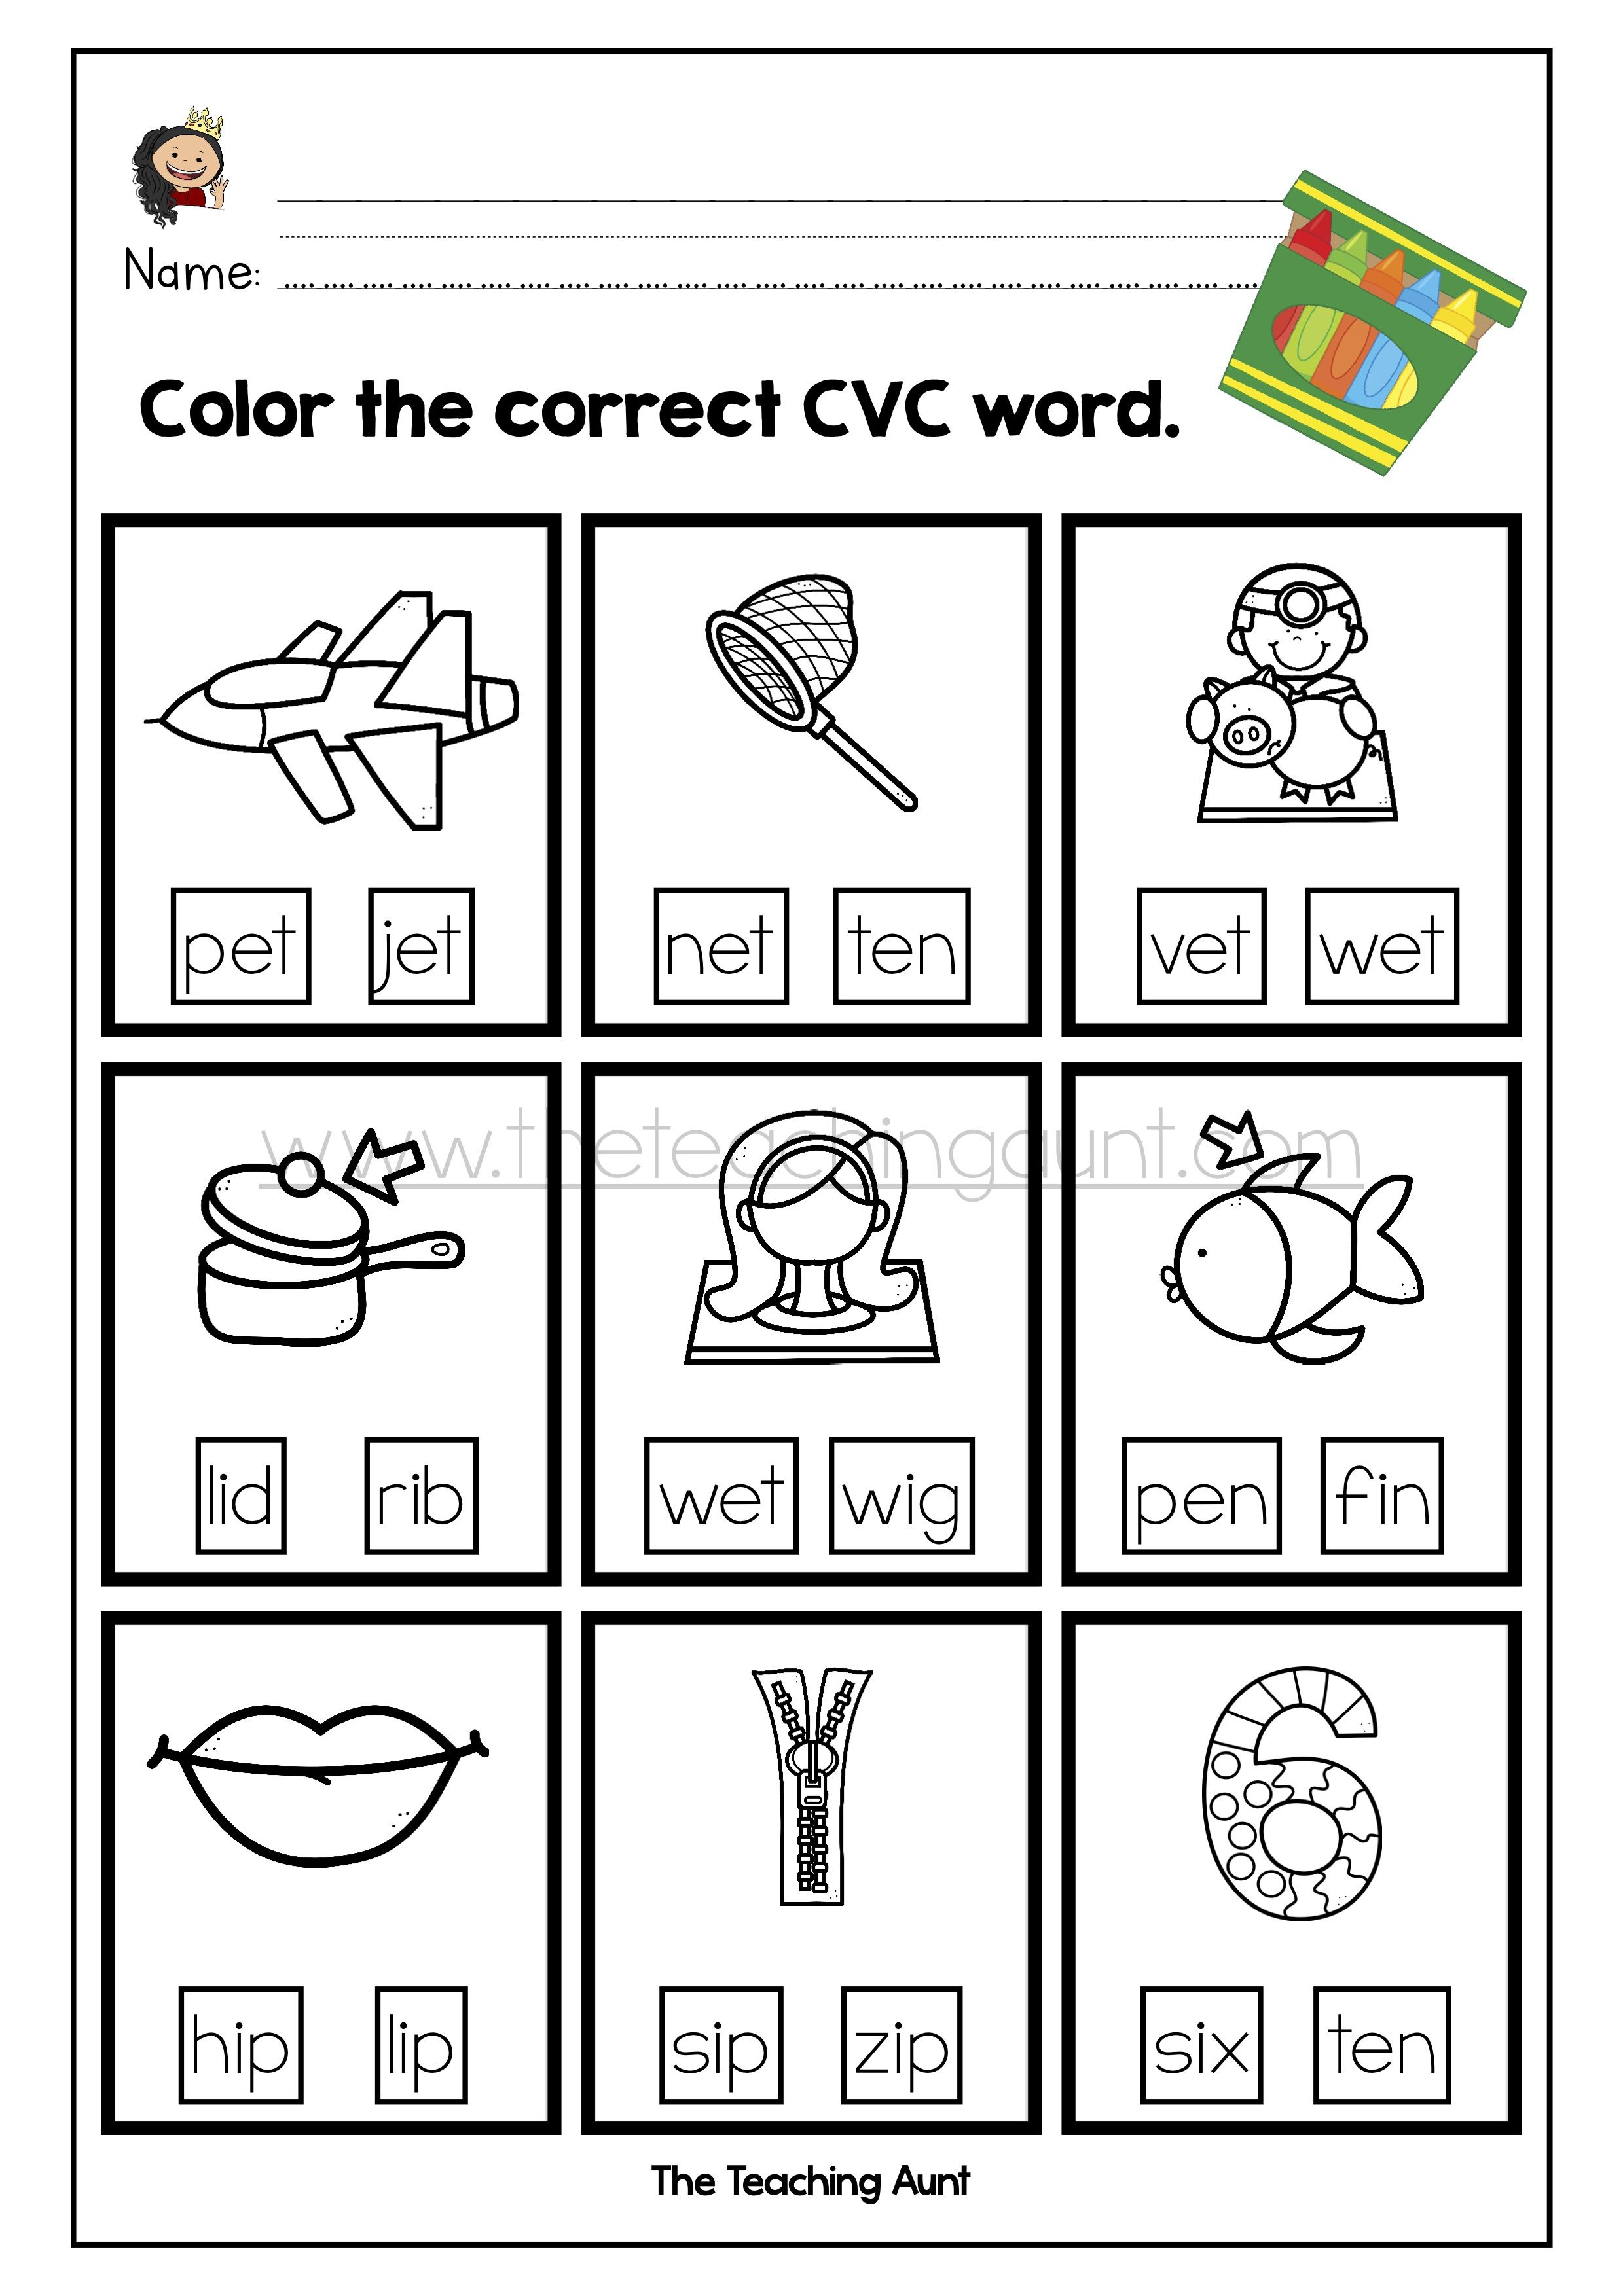 Cvc Words Worksheets For Kindergarten The Teaching Aunt Kindergarten Worksheets Cvc Words Cvc Words Kindergarten Worksheets